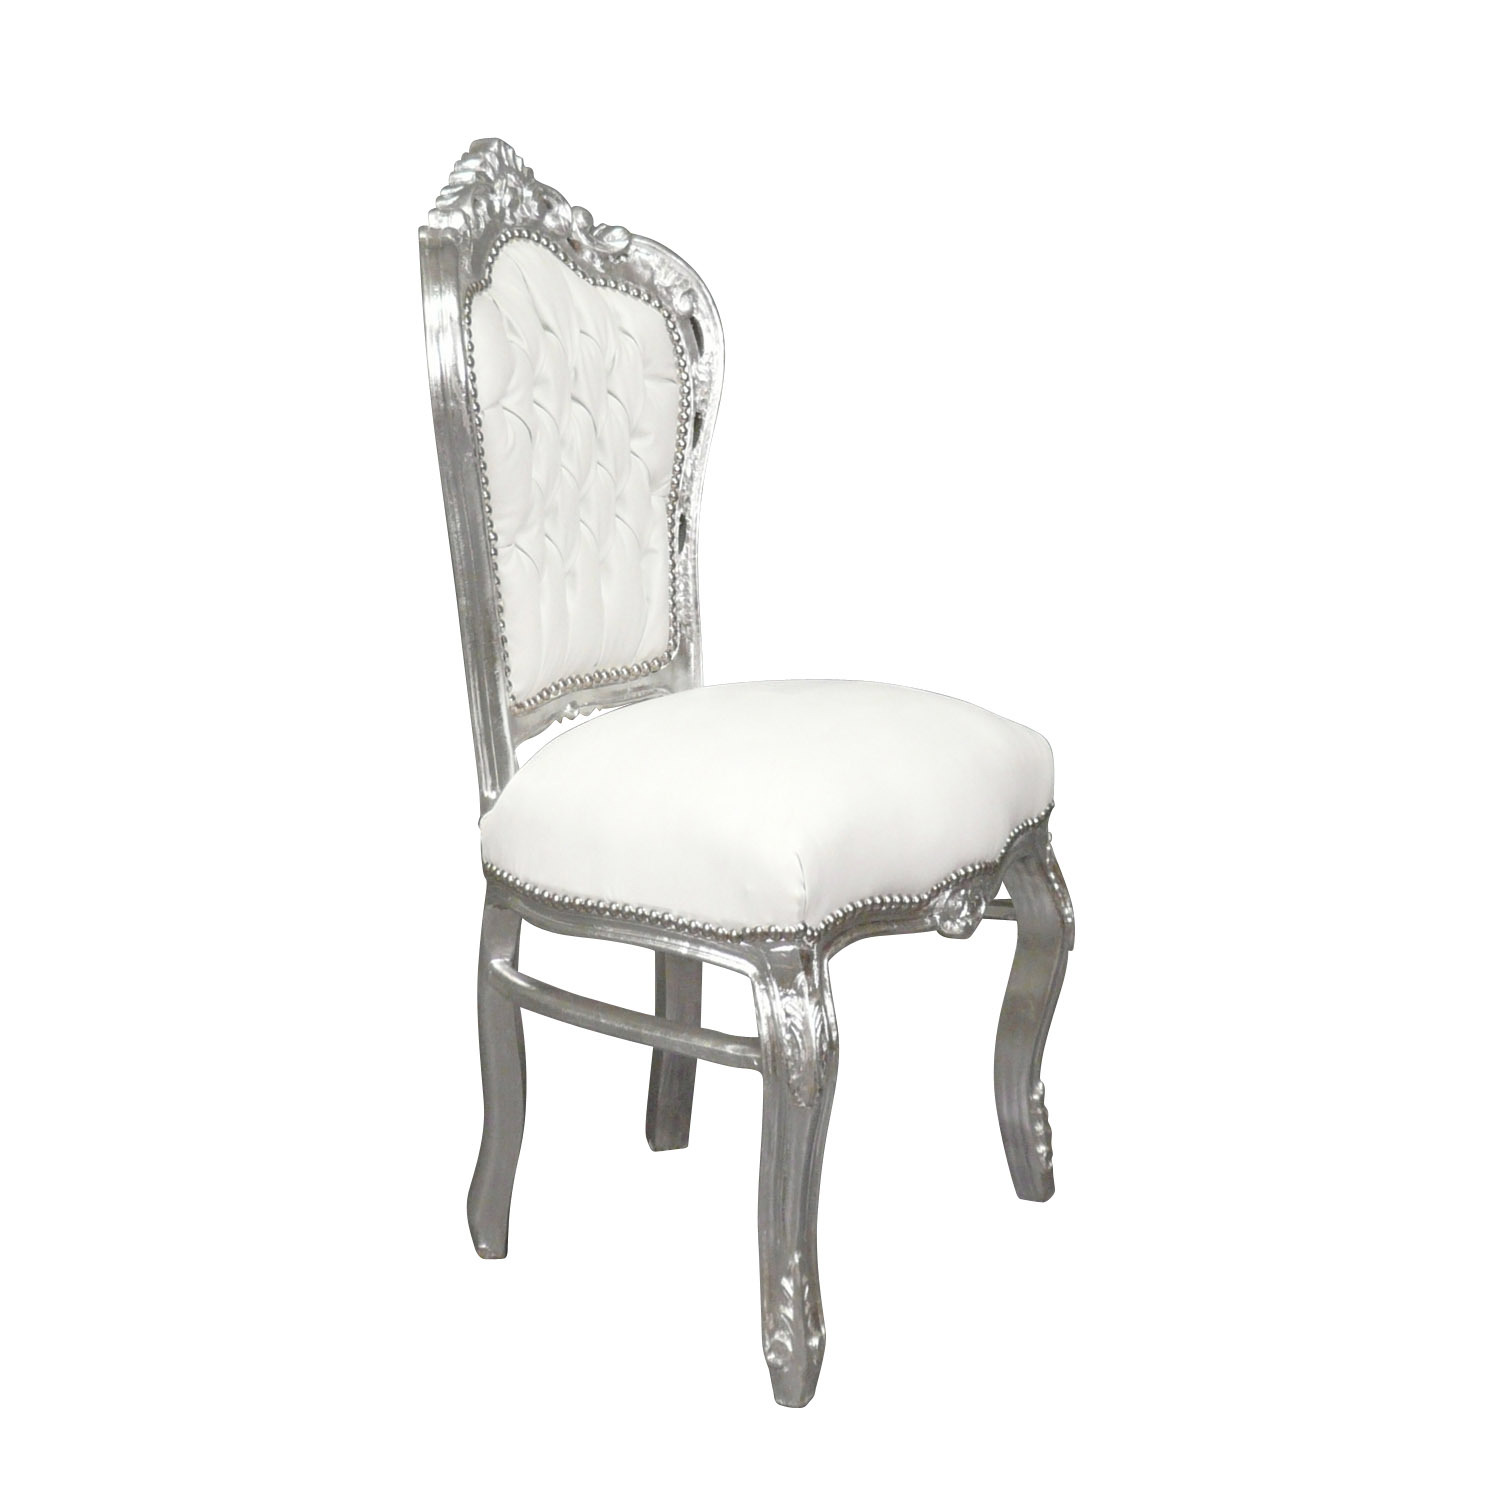 Chaise baroque galerie photo des chaises for Chaise blanche